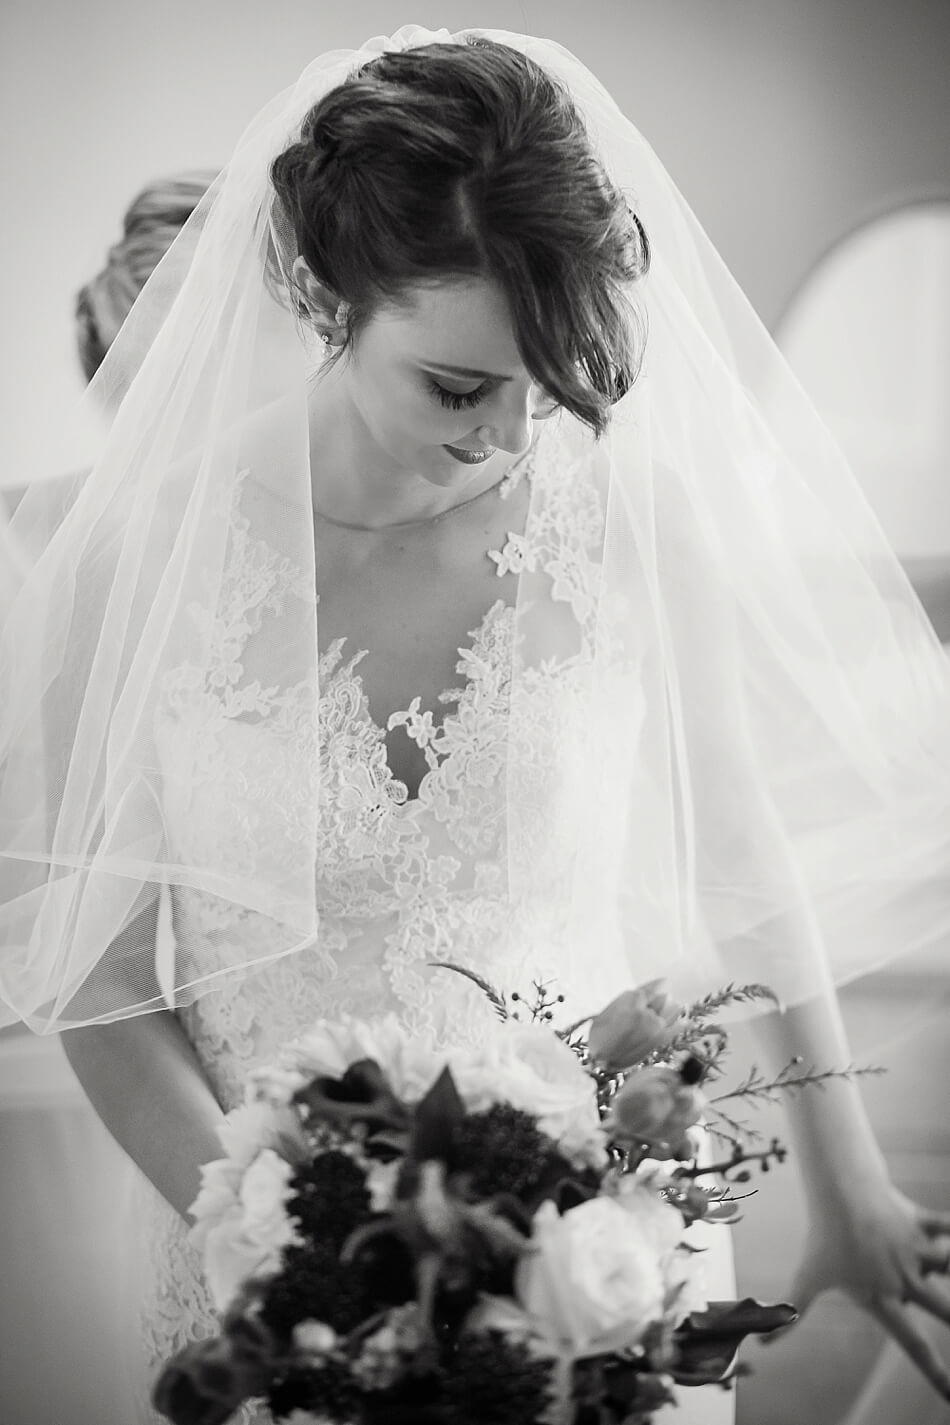 nikki-meyer_landtscap_stellenbosch_wedding_photographer_020